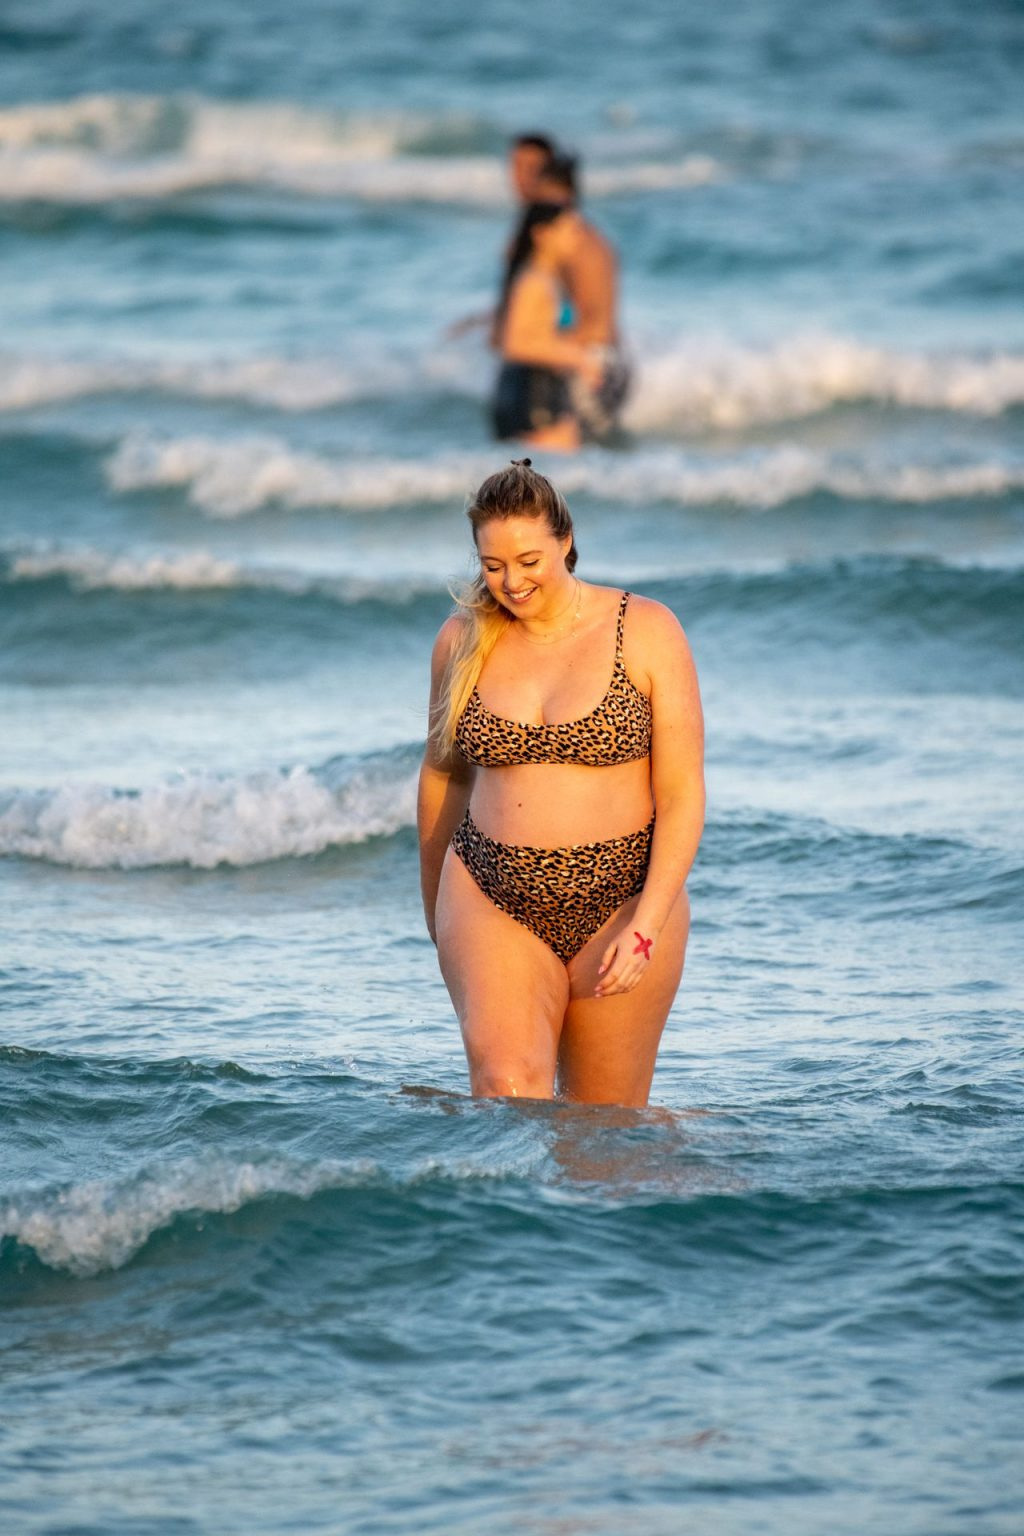 Iskra Lawrence Sexy The Fappening Blog 15 1024x1536 - Heavily Pregnant Model Iskra Lawrence Takes A Sunset Dip In Miami Beach (44 Photos)